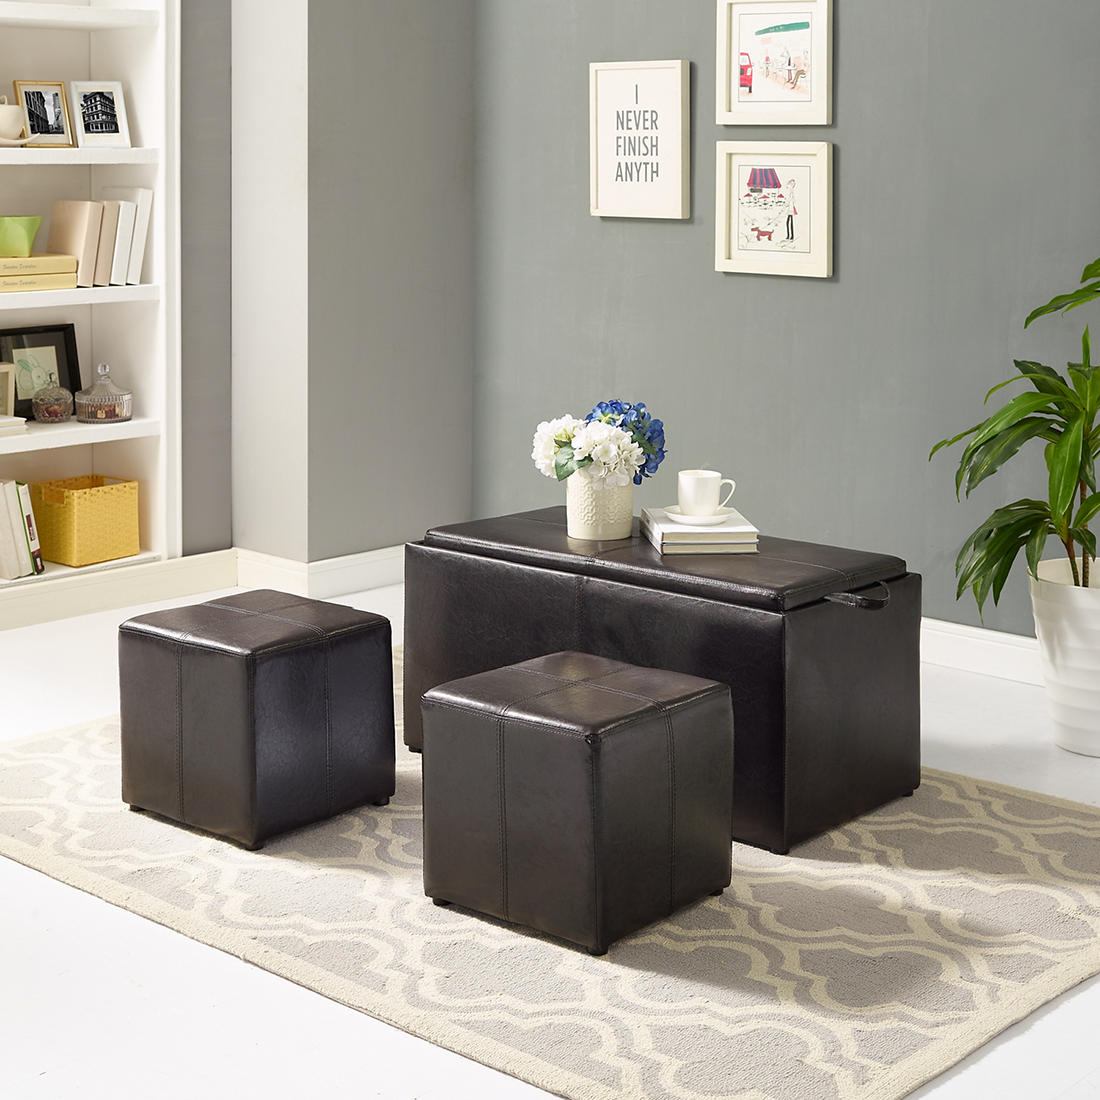 Tremendous 3 Pc Ottoman Set Gmtry Best Dining Table And Chair Ideas Images Gmtryco